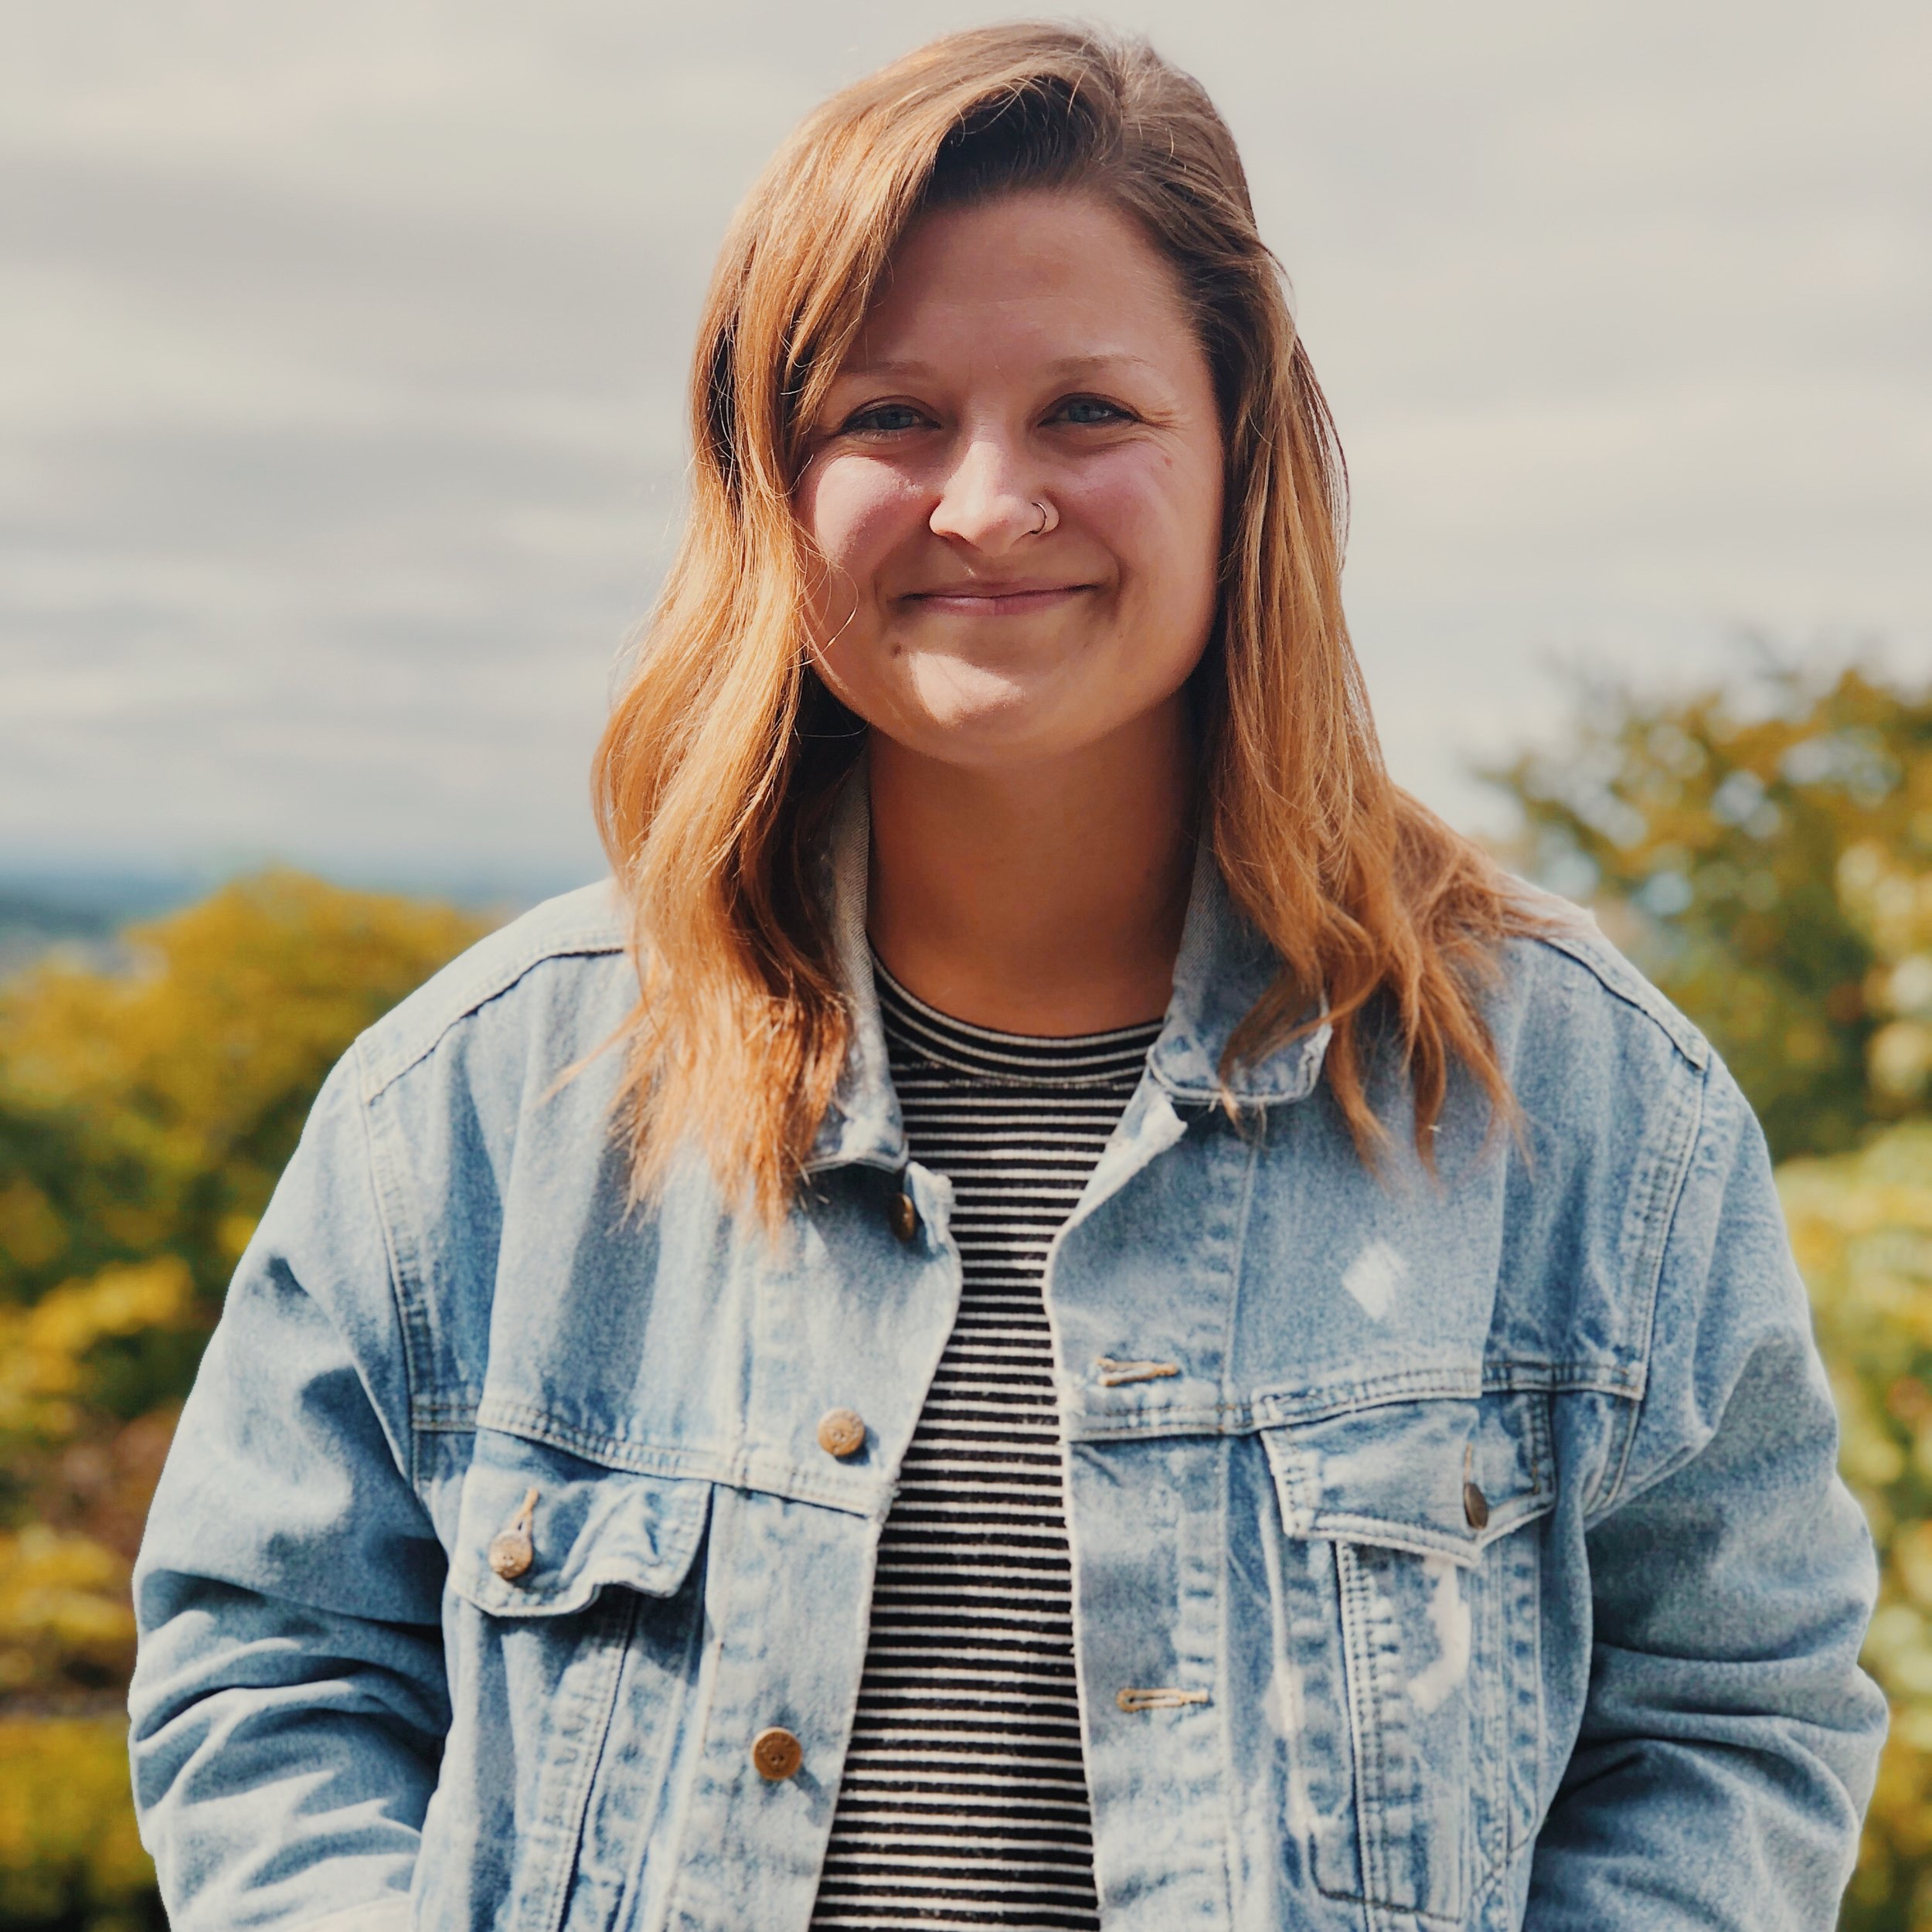 Starr Peterson - Hey friends! My name is Starr Peterson and I am originally from Kansas City but Oklahoma is my 6th state to reside in. I graduated from Samford University in 2015 with a degree in Theatre, as well as from the Kanakuk Institute in 2017. I've gotten to serve with Kanakuk Kamps the past 9 summers at K-Kountry and Kampout! I am so excited to be in my third year with Bartlesville KLIFE and see what the Lord has in store for 2019-2020.Email: starr.peterson@klife.com